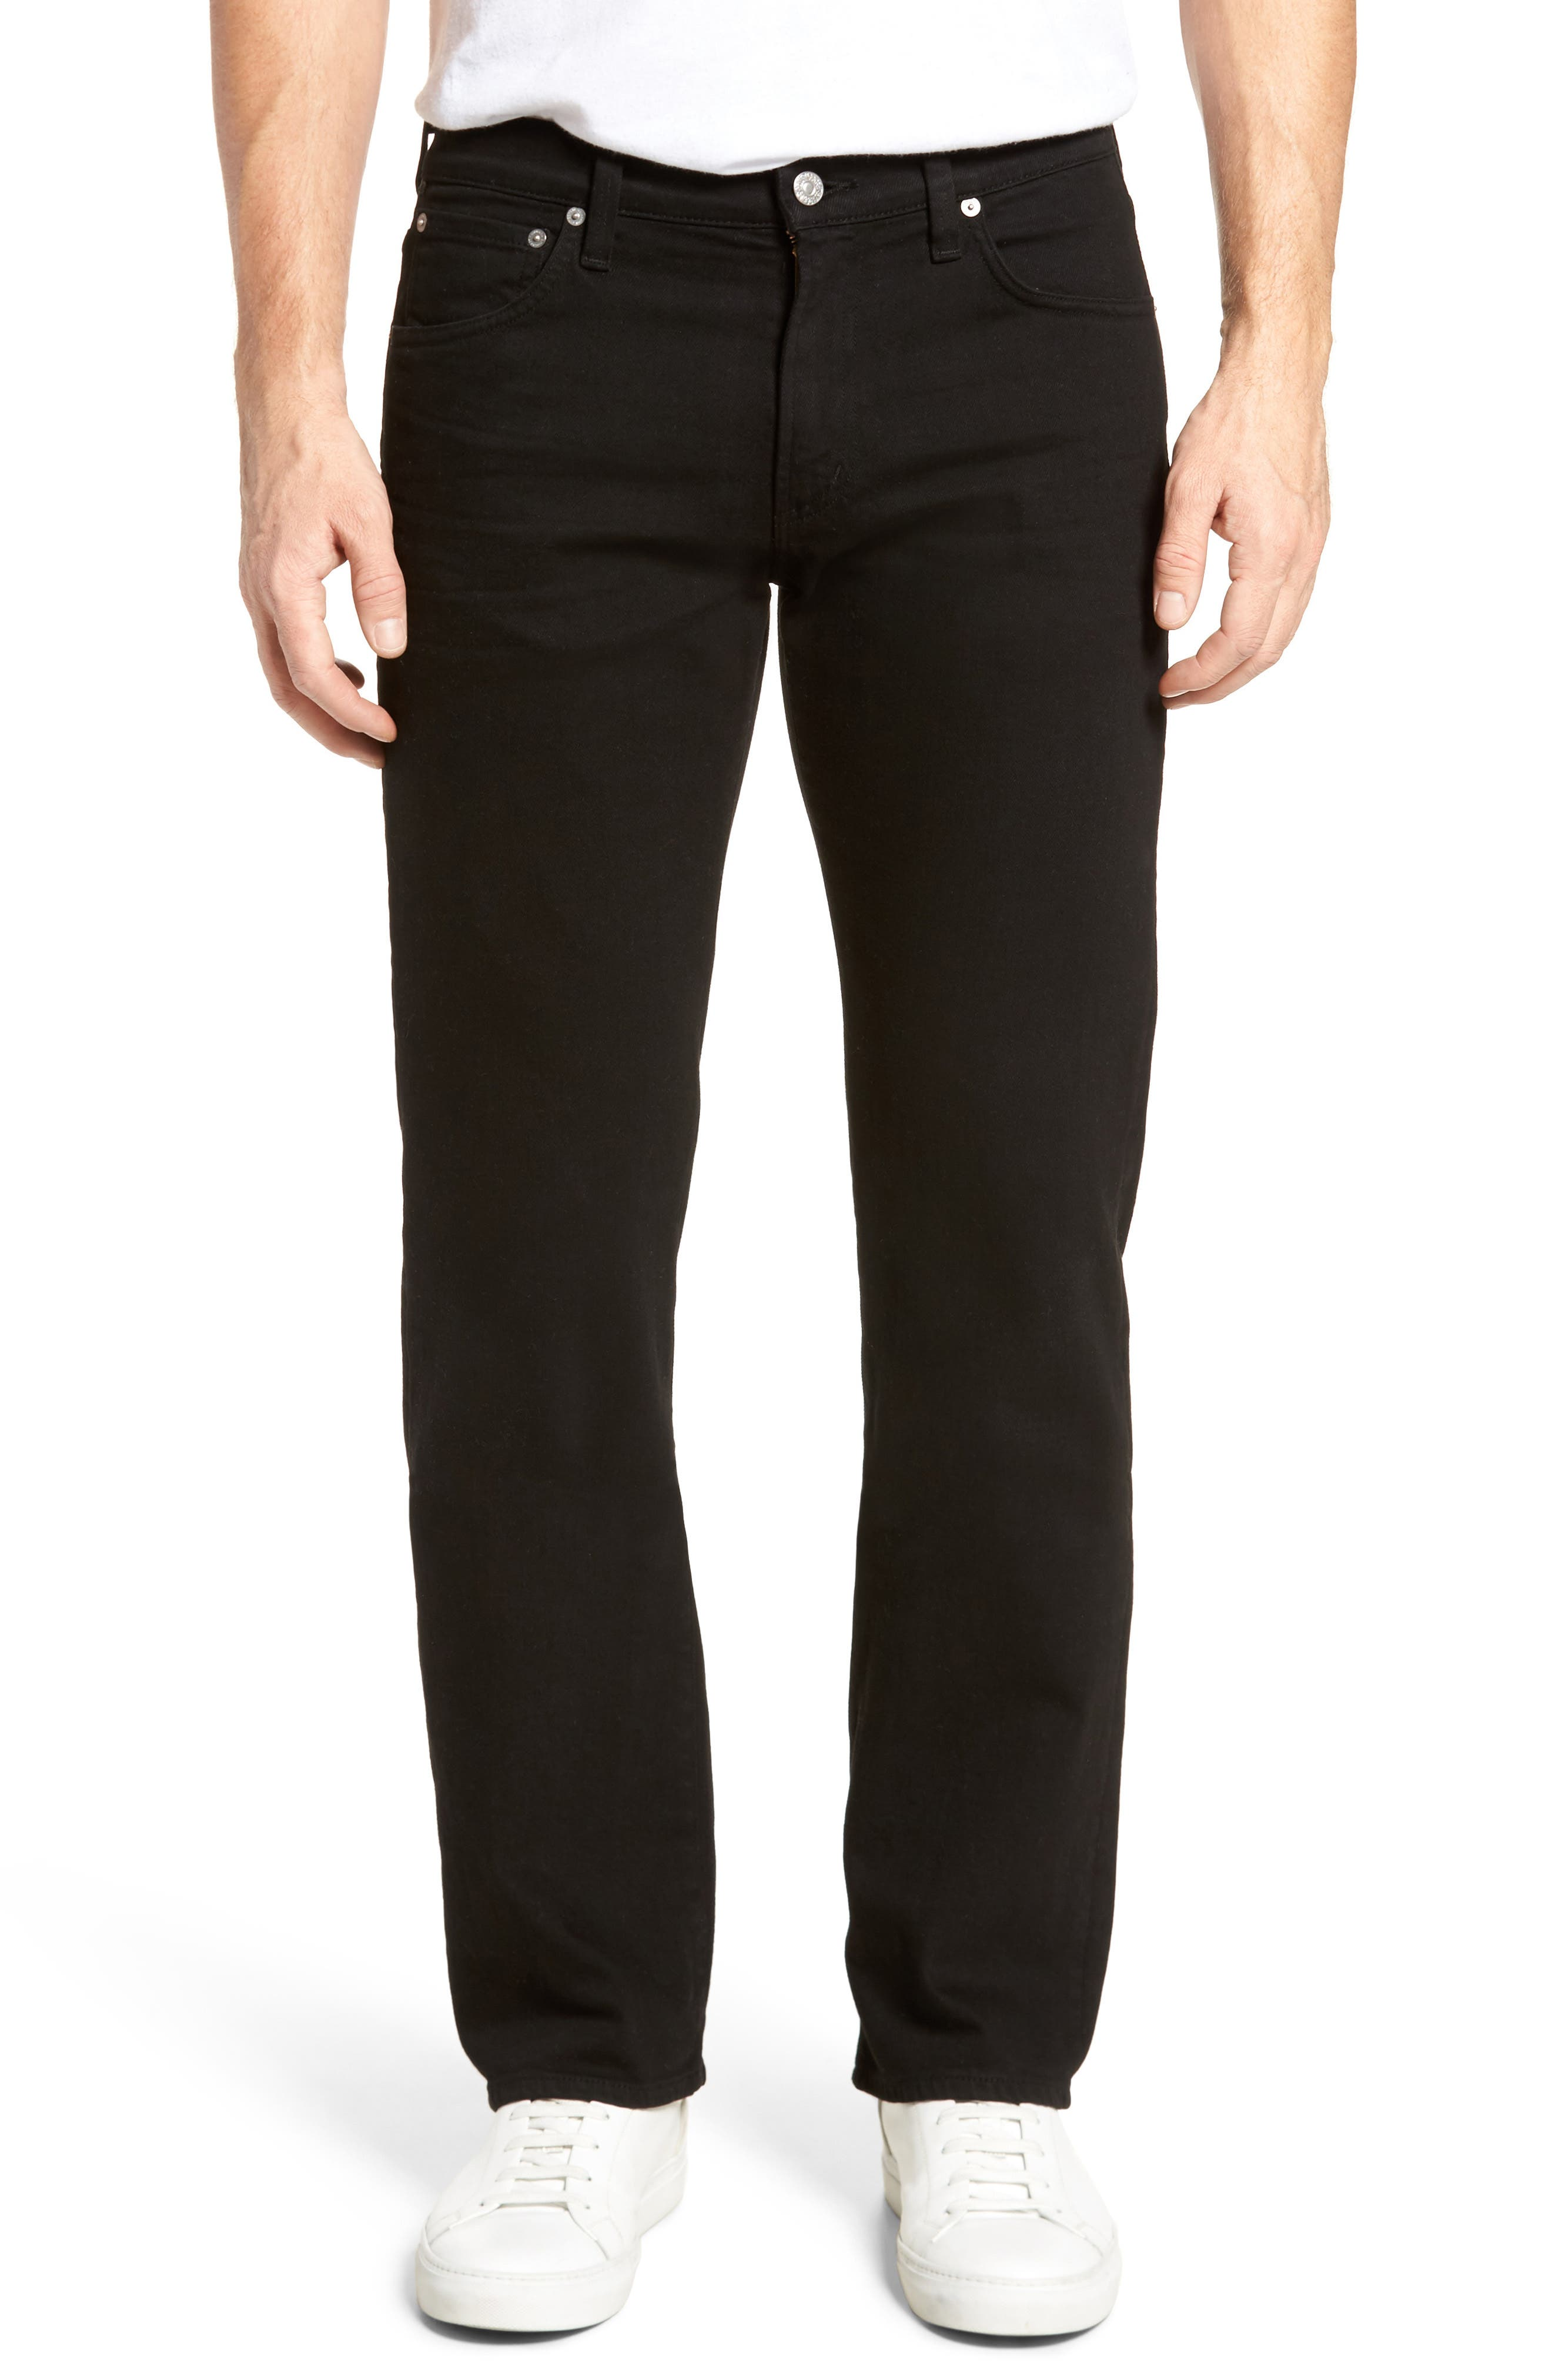 Sid Straight Fit Jeans,                         Main,                         color, 004